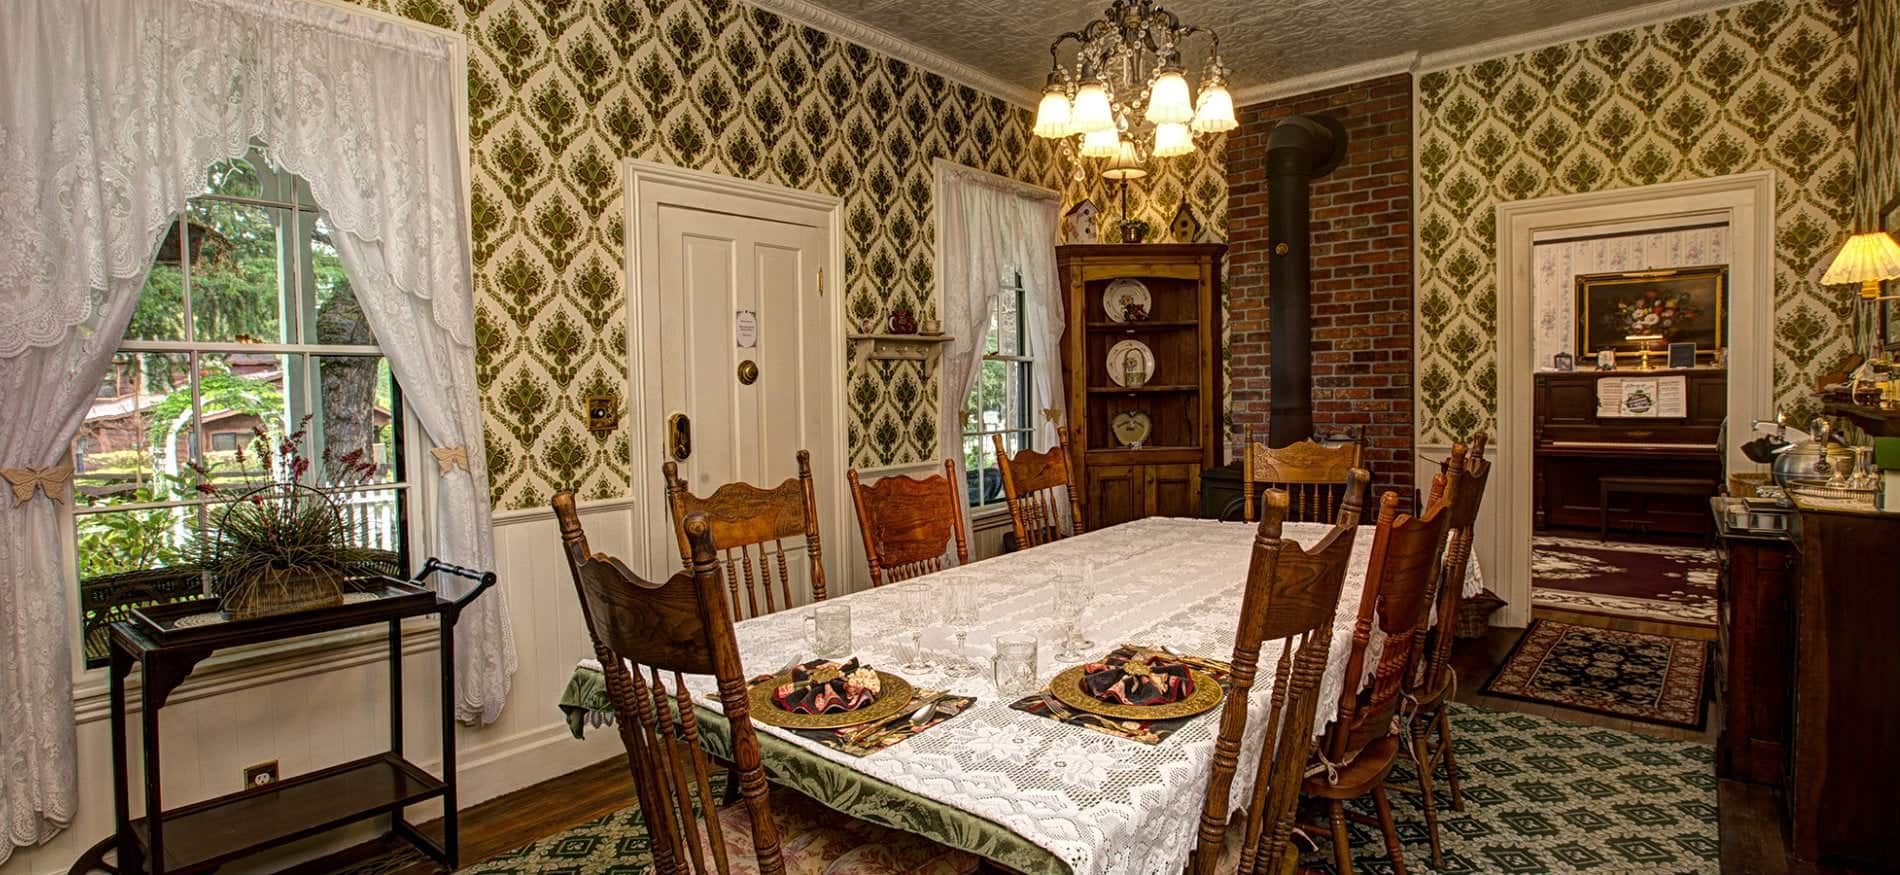 1. Dining room with green and white papered walls, windows with white lace curtains, and wood table with eight chairs